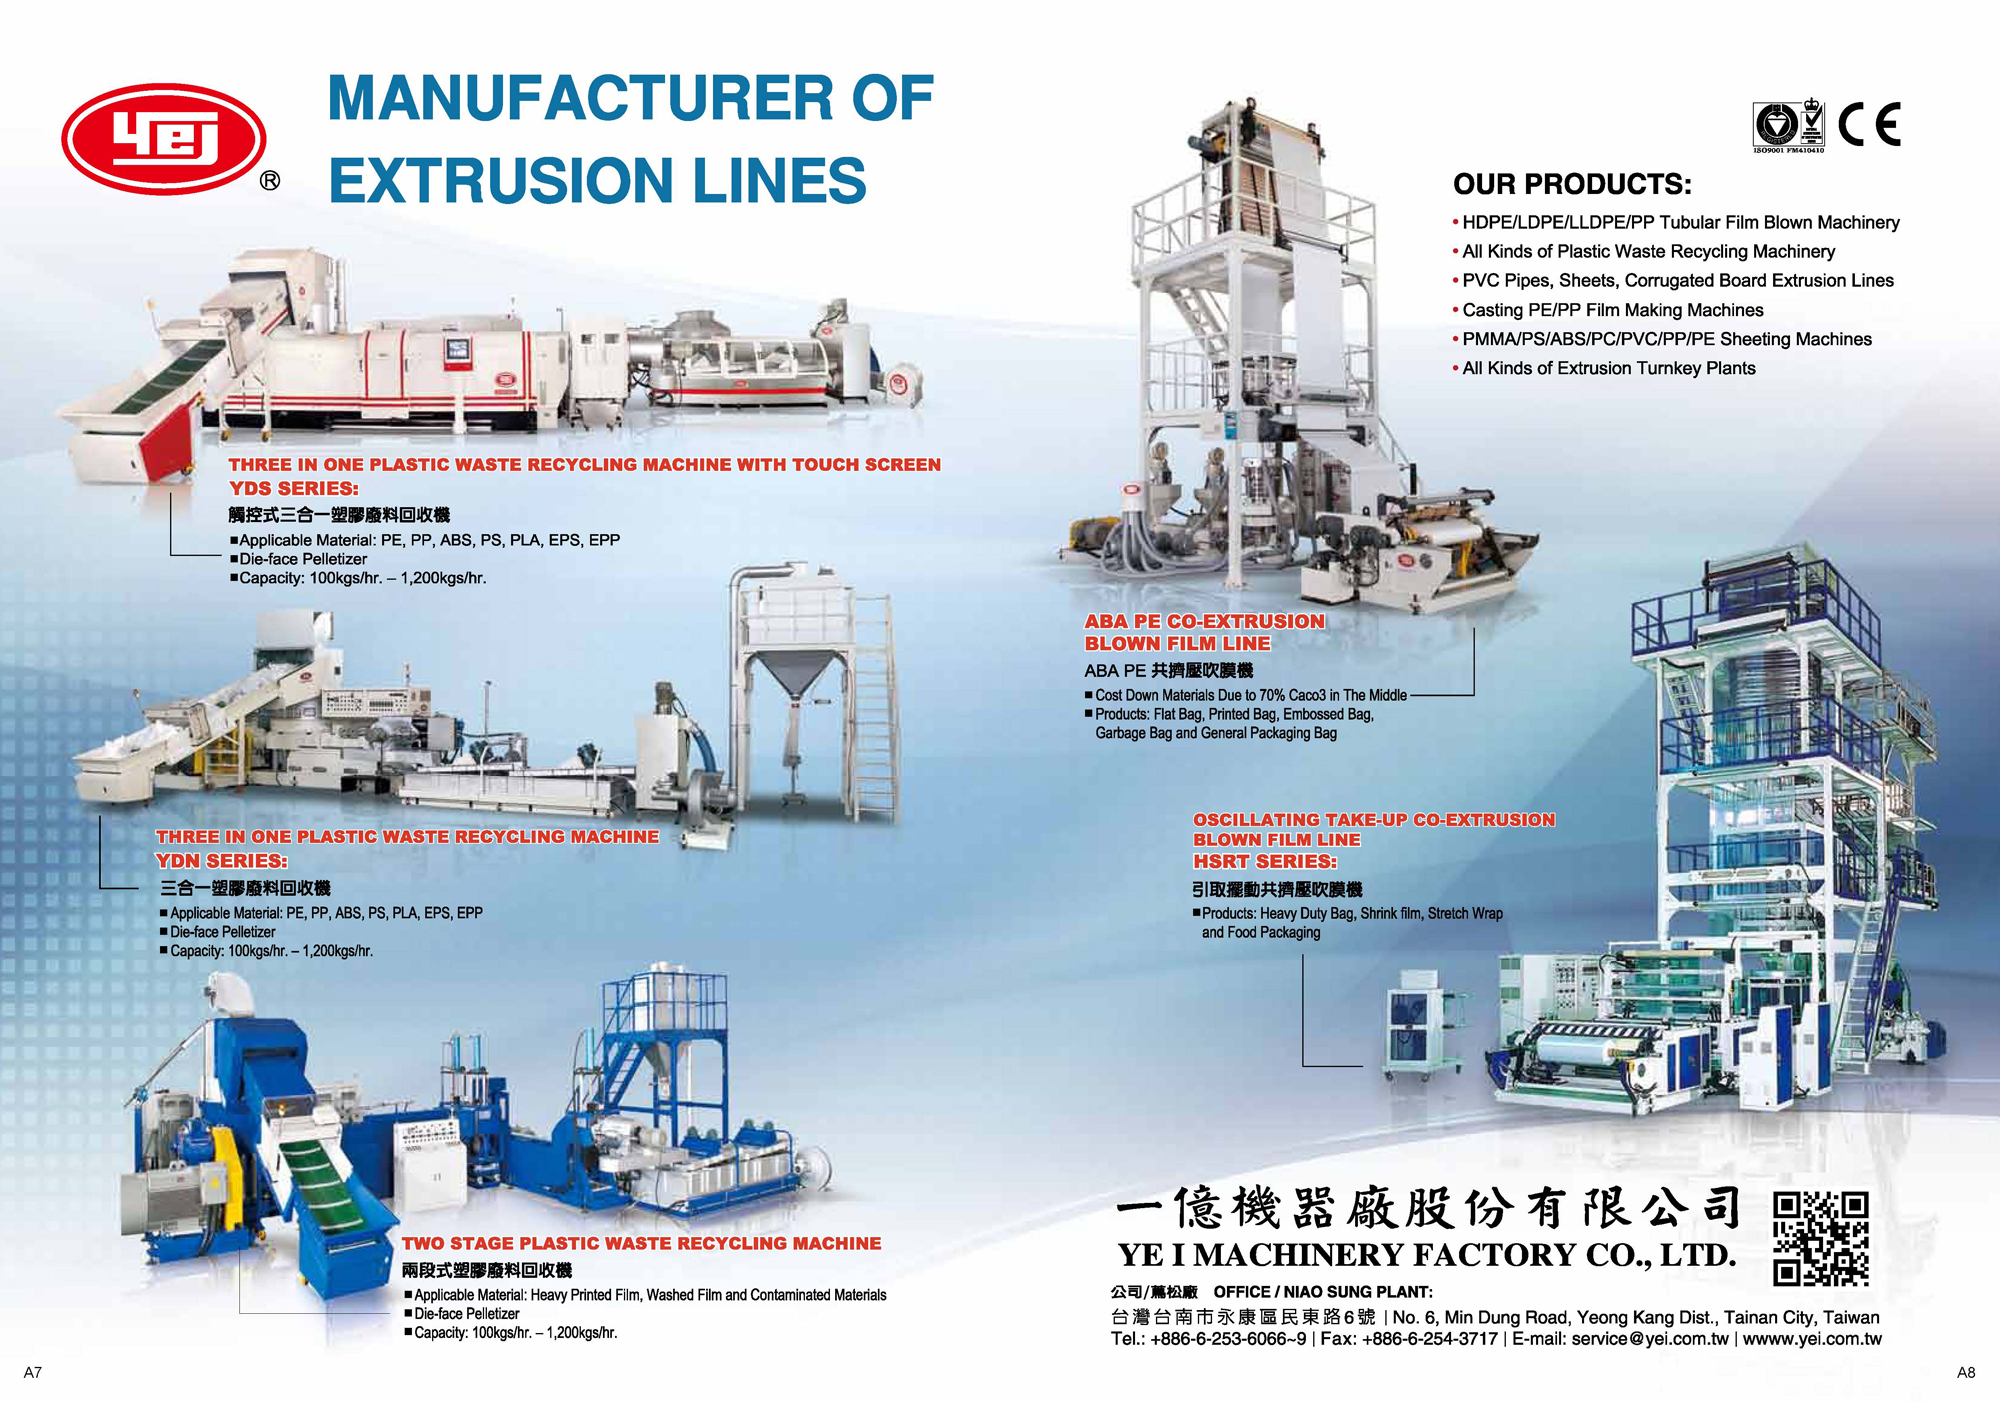 2014-2015 Taiwan Plastics and Rubber, Food, Packaging and